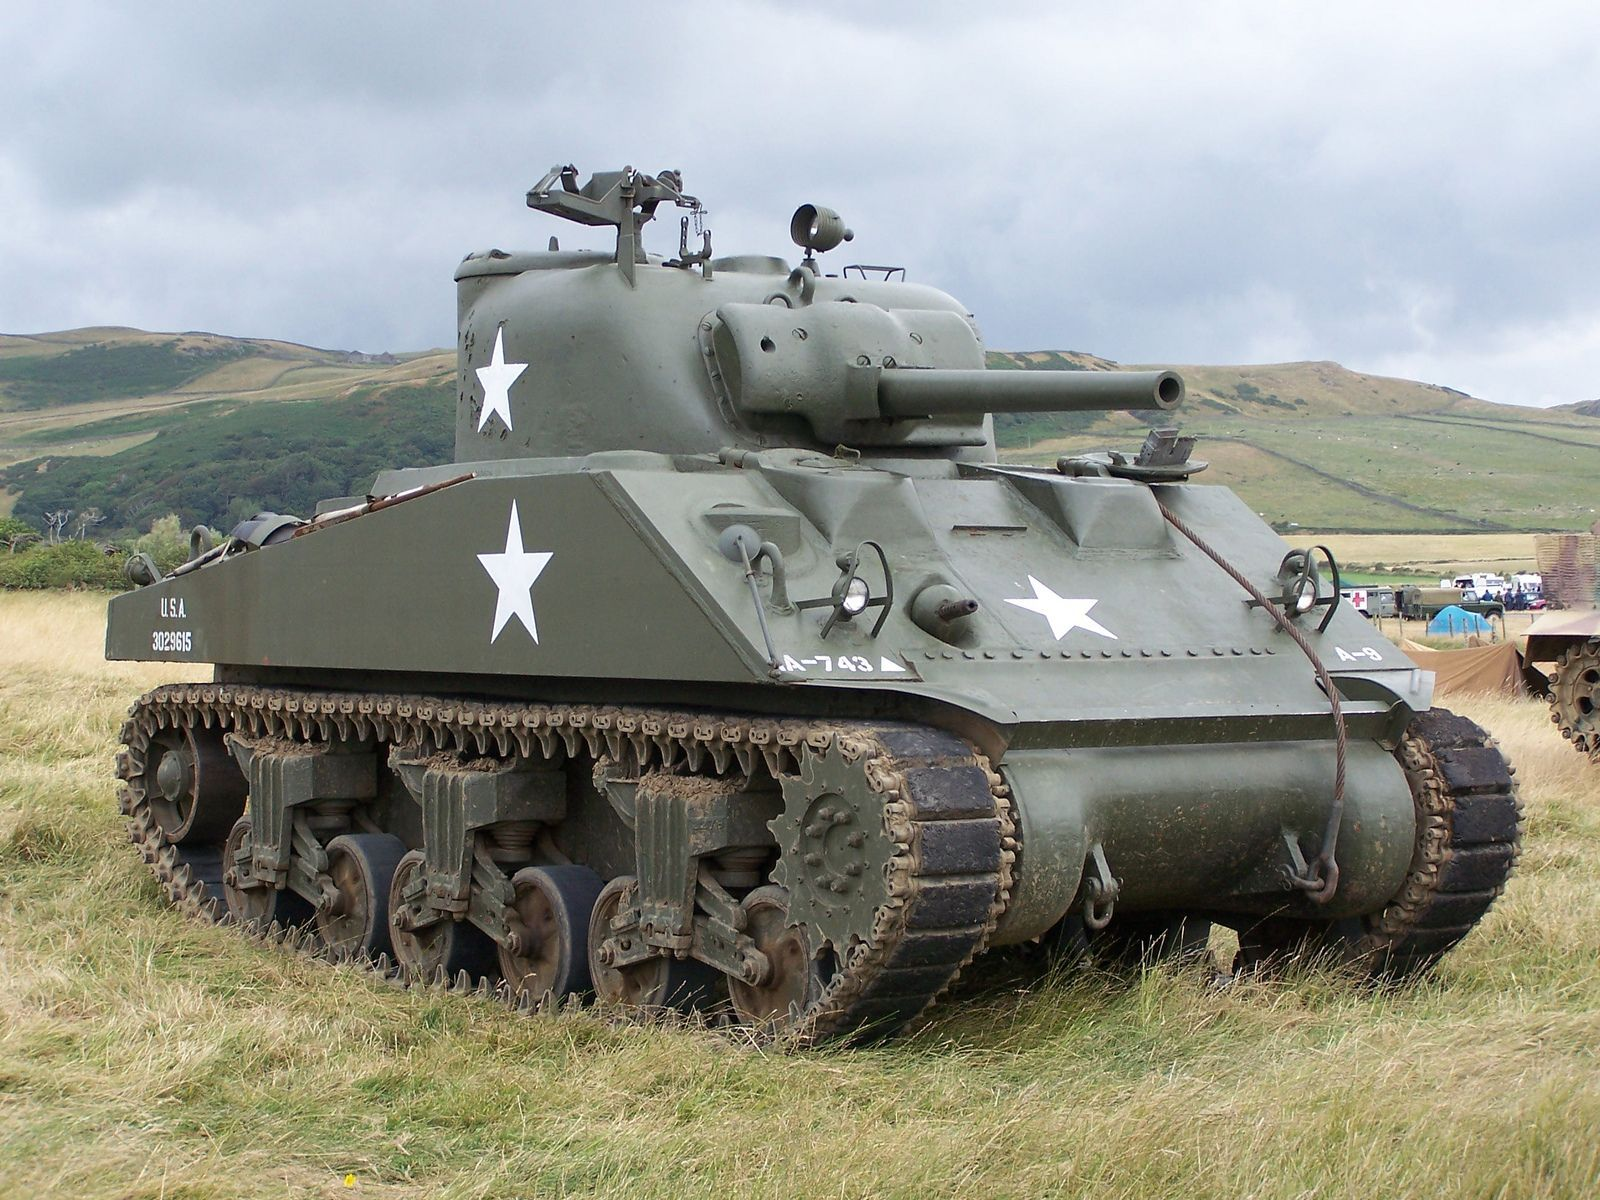 Here Are The 10 Most Memorable Tanks Of WW2 | HotCars